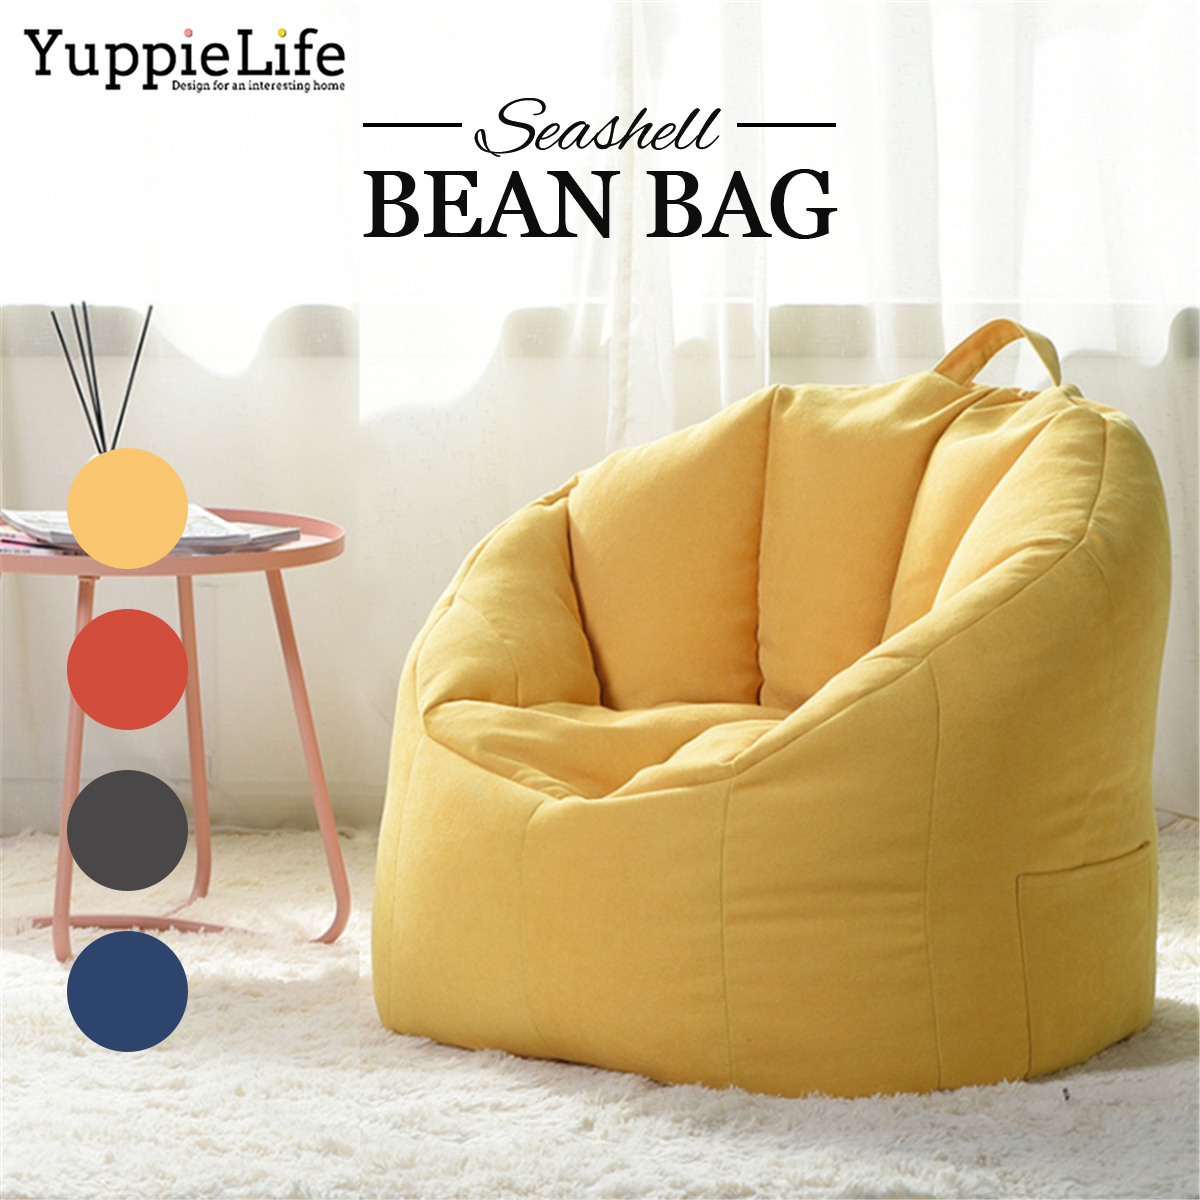 Awe Inspiring Big Joe Milano Bean Bag Chair Multiple Colors Available Comfort For Kids Adult Covers Caraccident5 Cool Chair Designs And Ideas Caraccident5Info